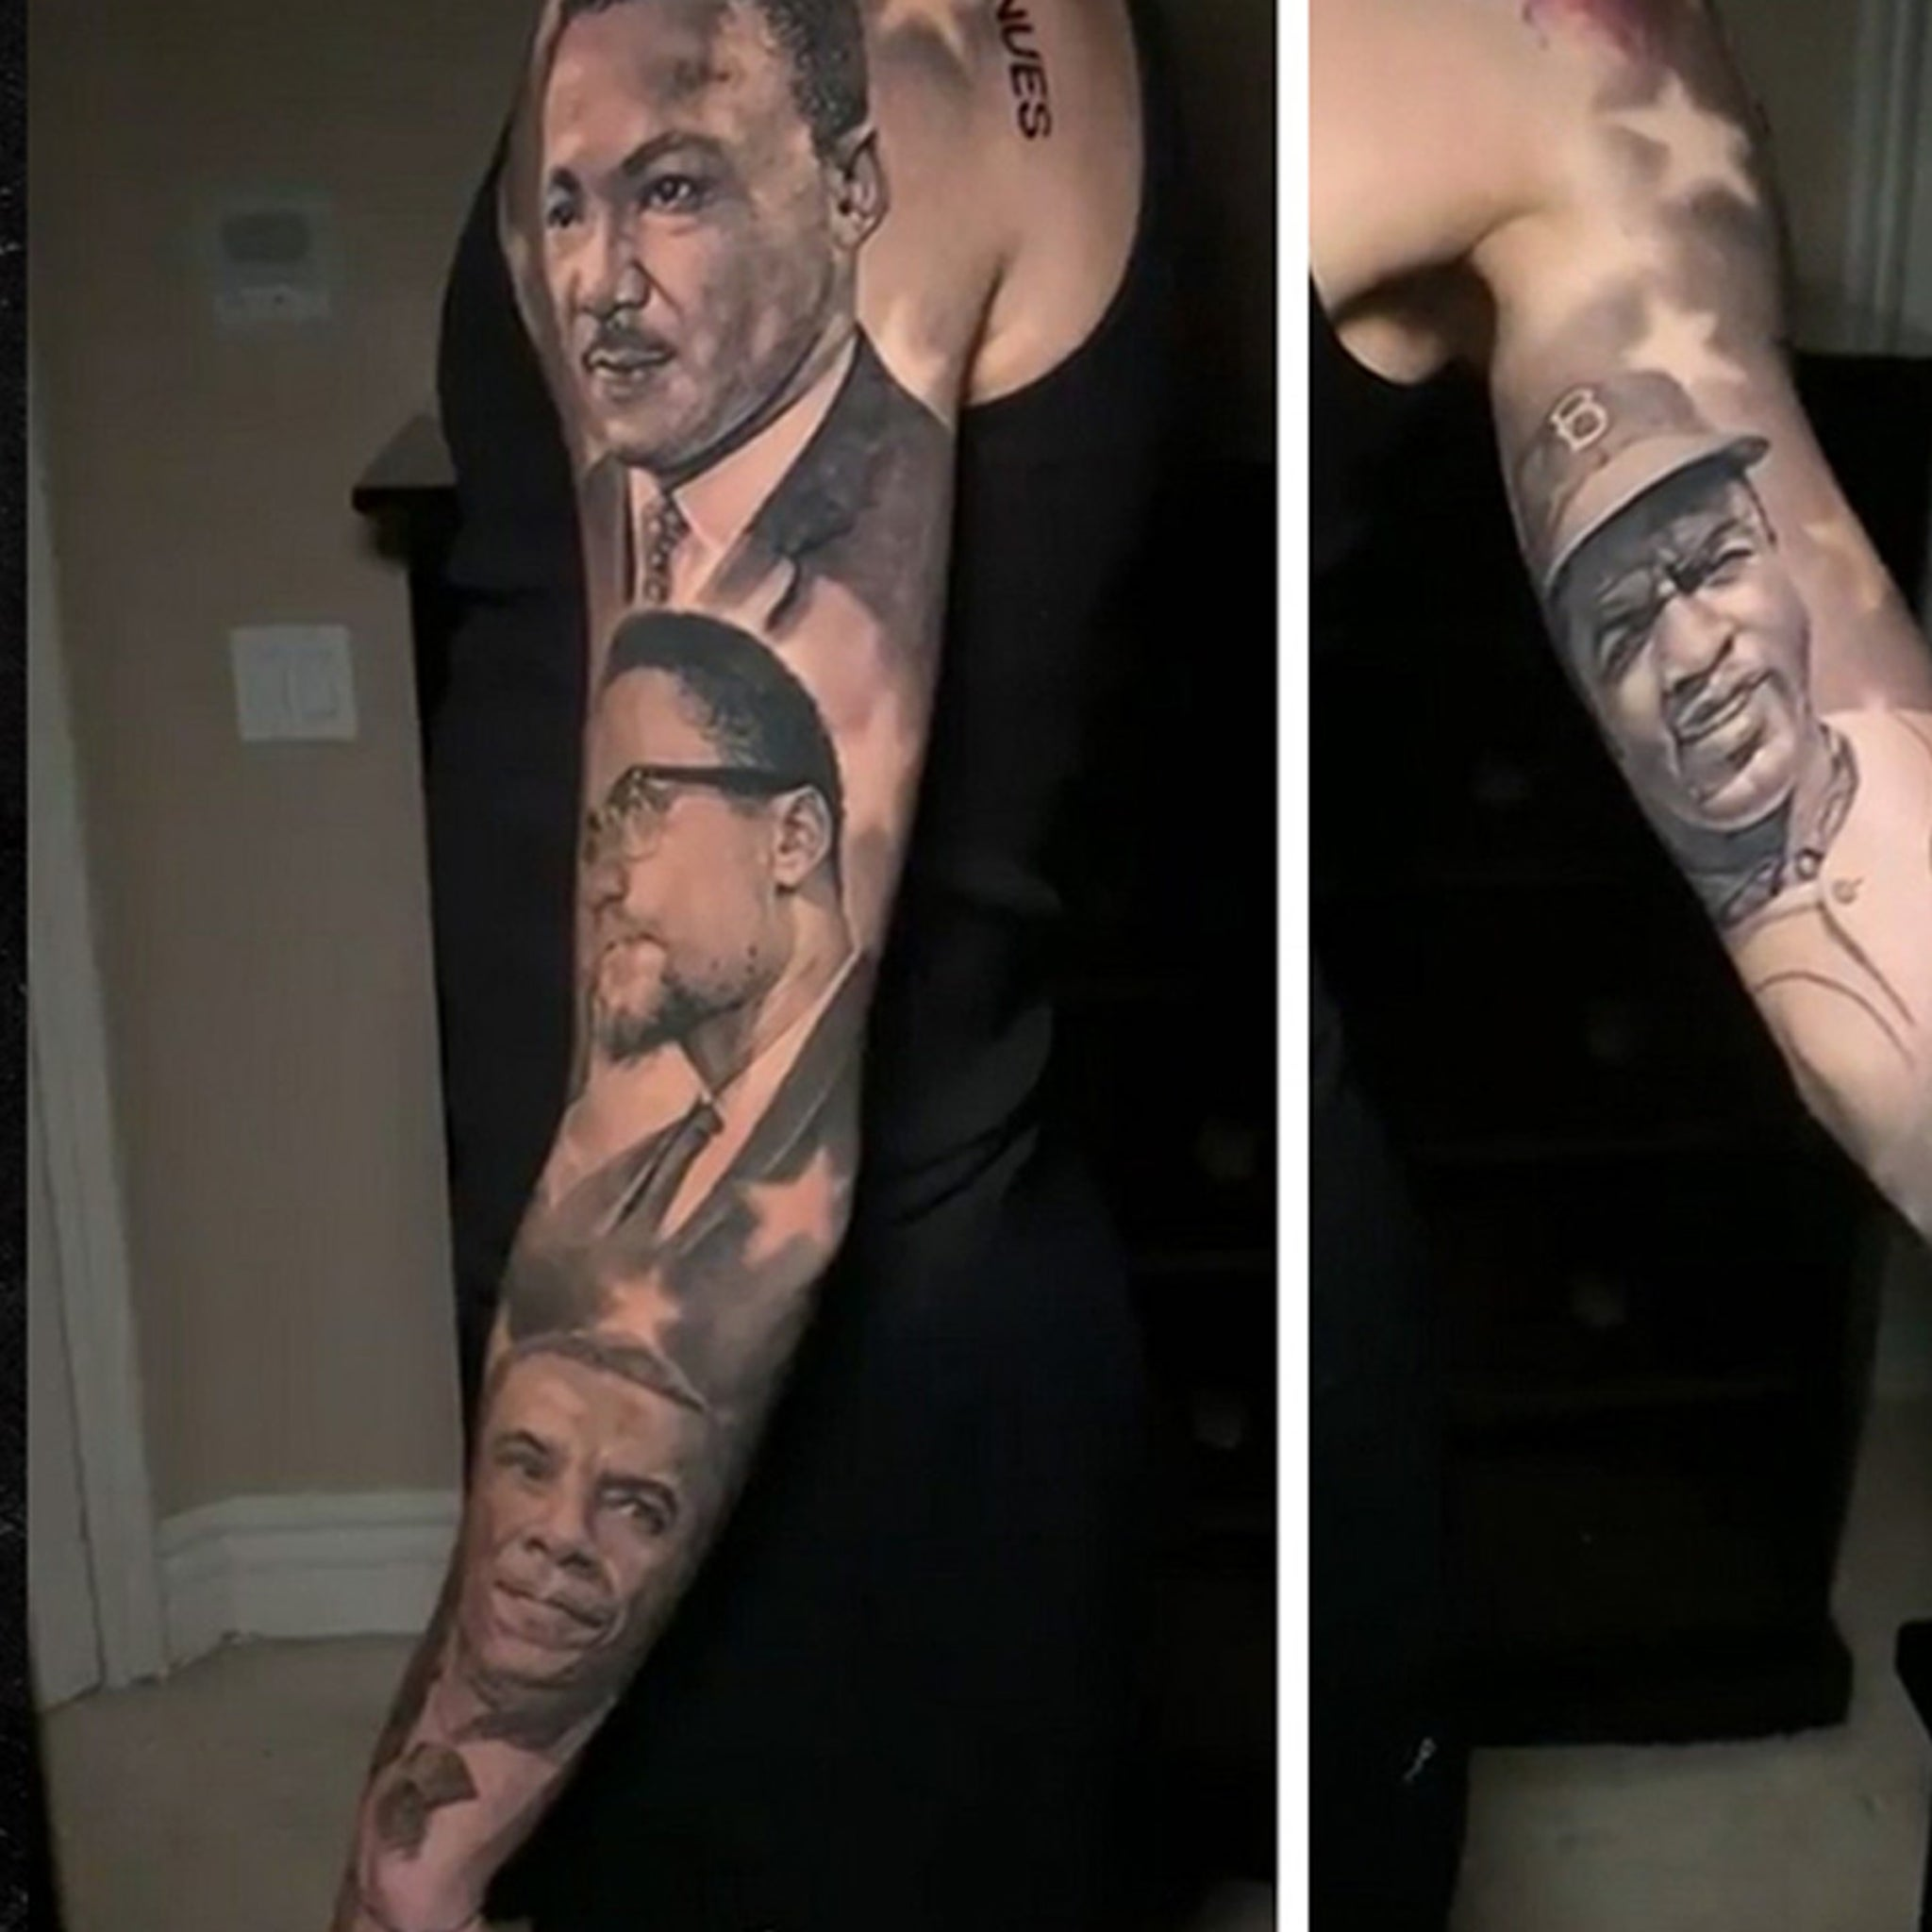 Lonzo Ball Gets Historical Figures Tatted On Arm Insanely Realistic